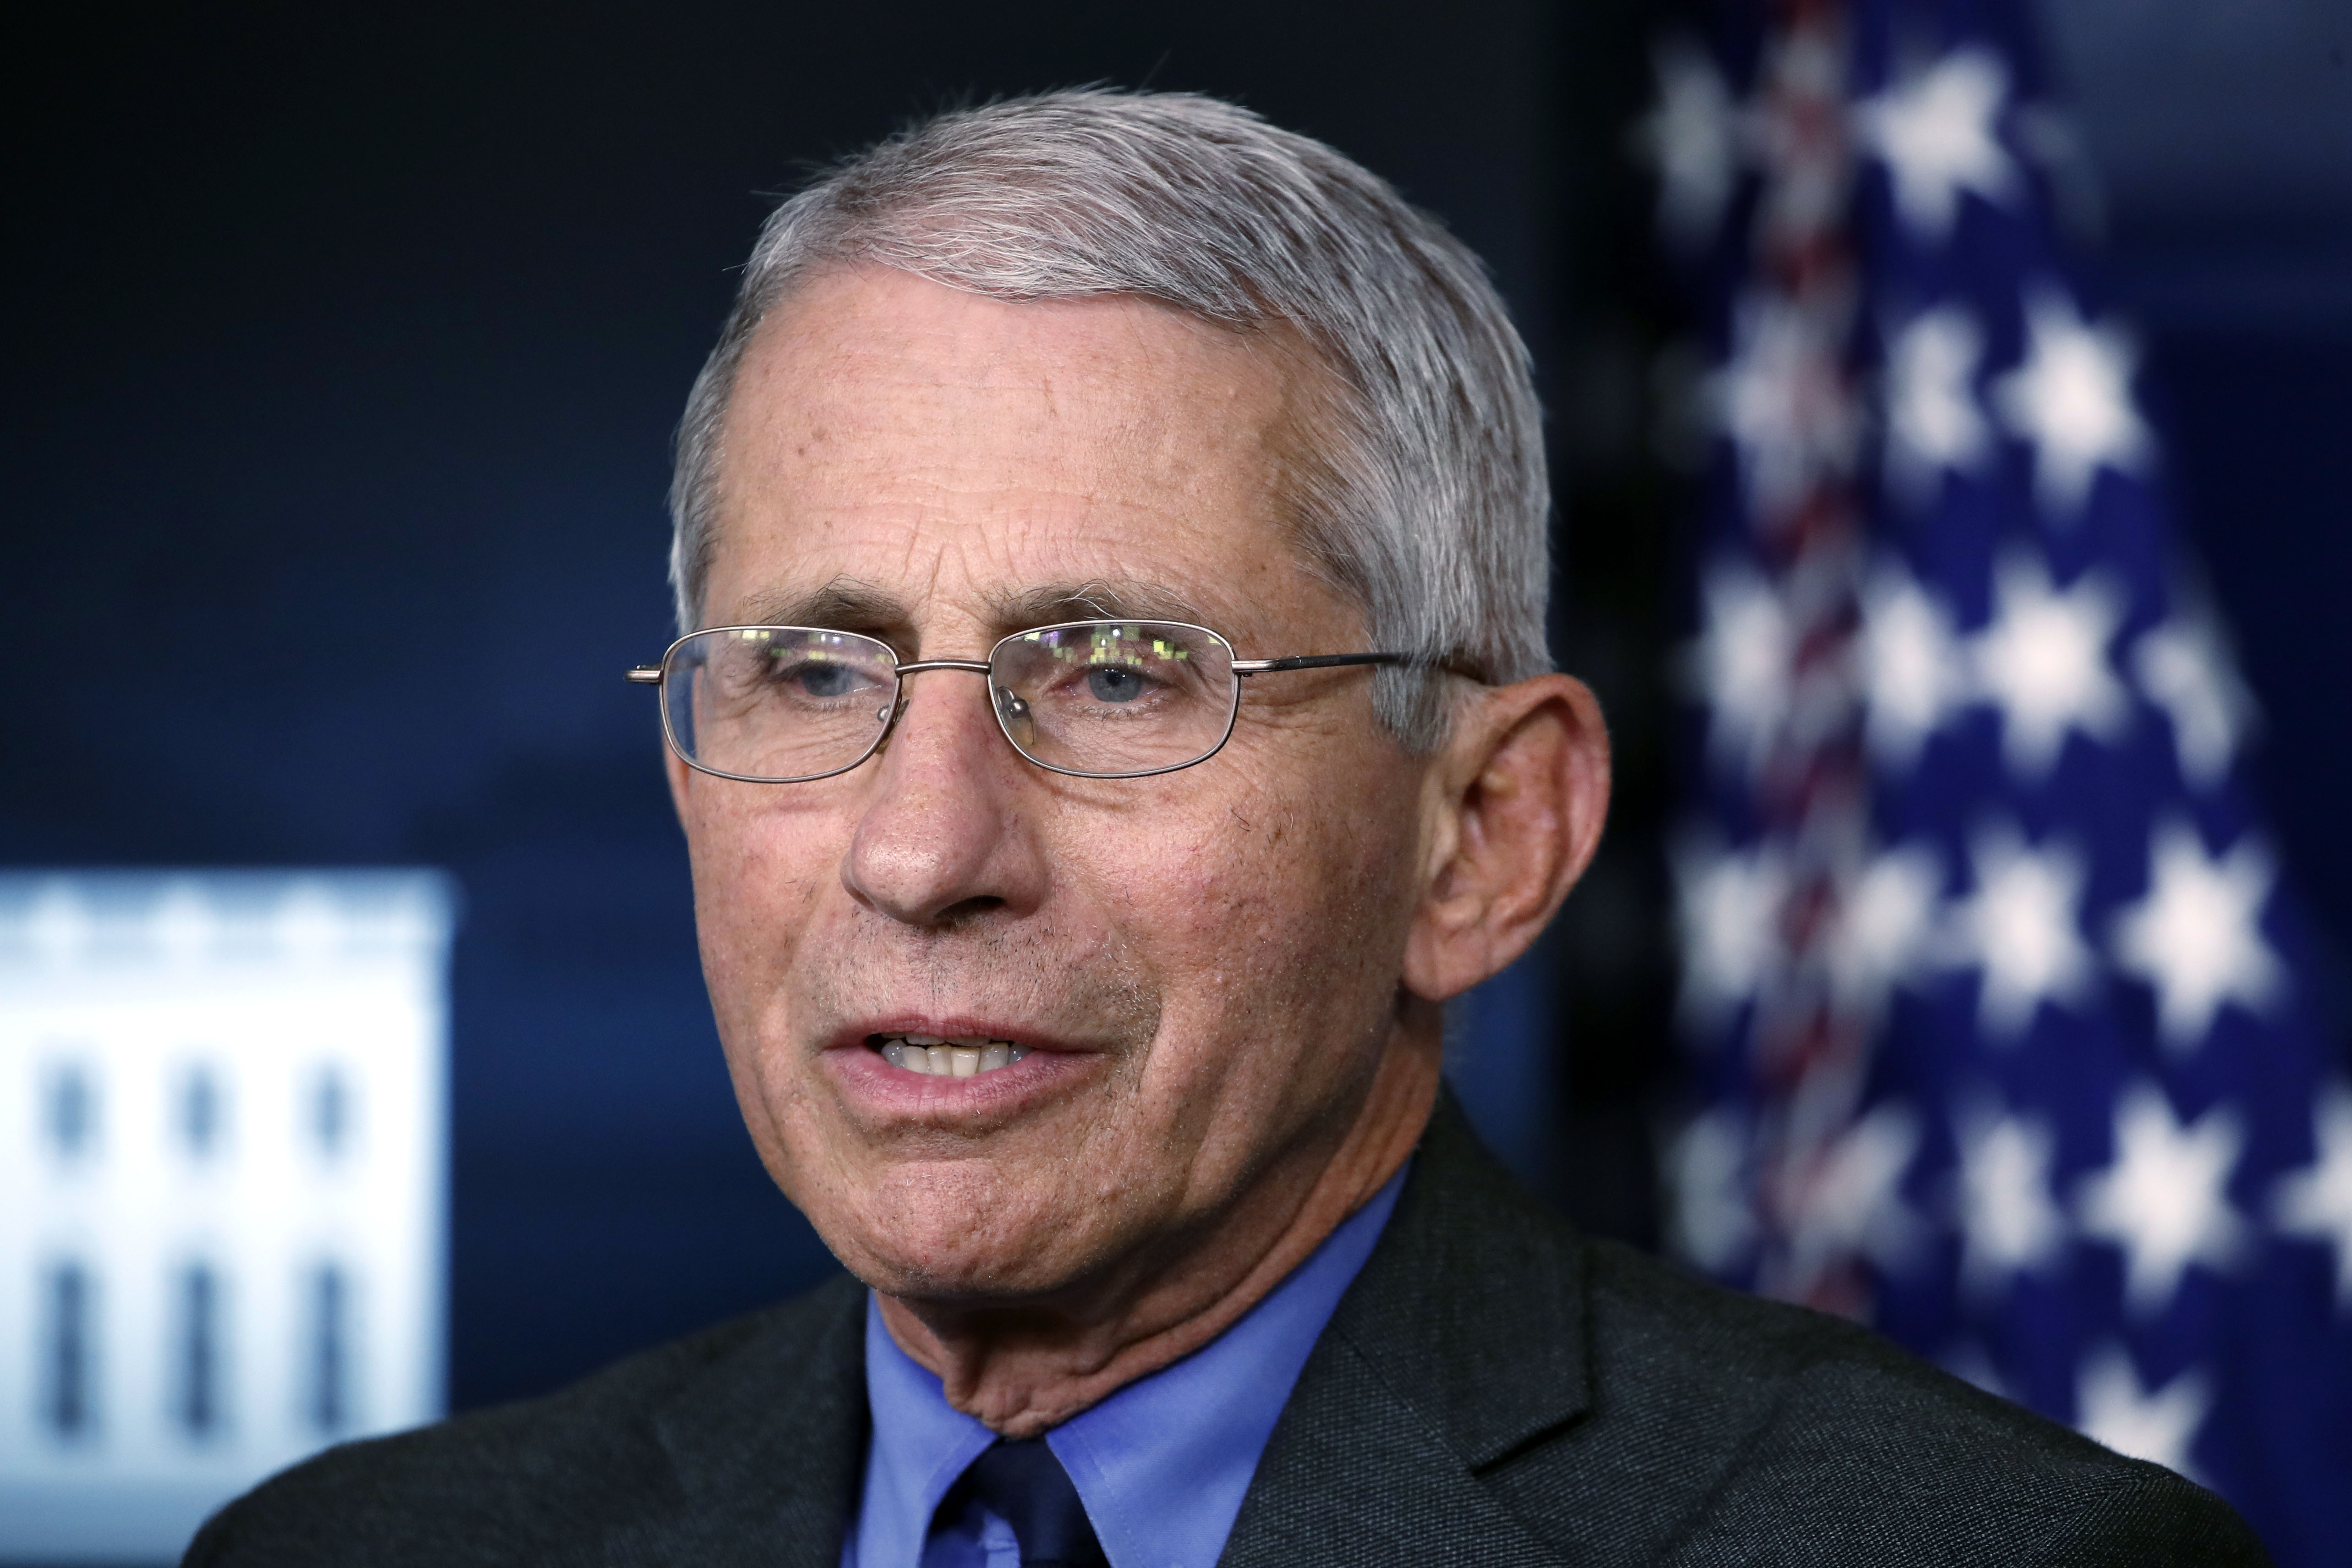 Dr. Anthony Fauci,director of the National Institute of Allergy and Infectious Diseases, speaks about the coronavirus pandemic at a White House press briefing on April 13.